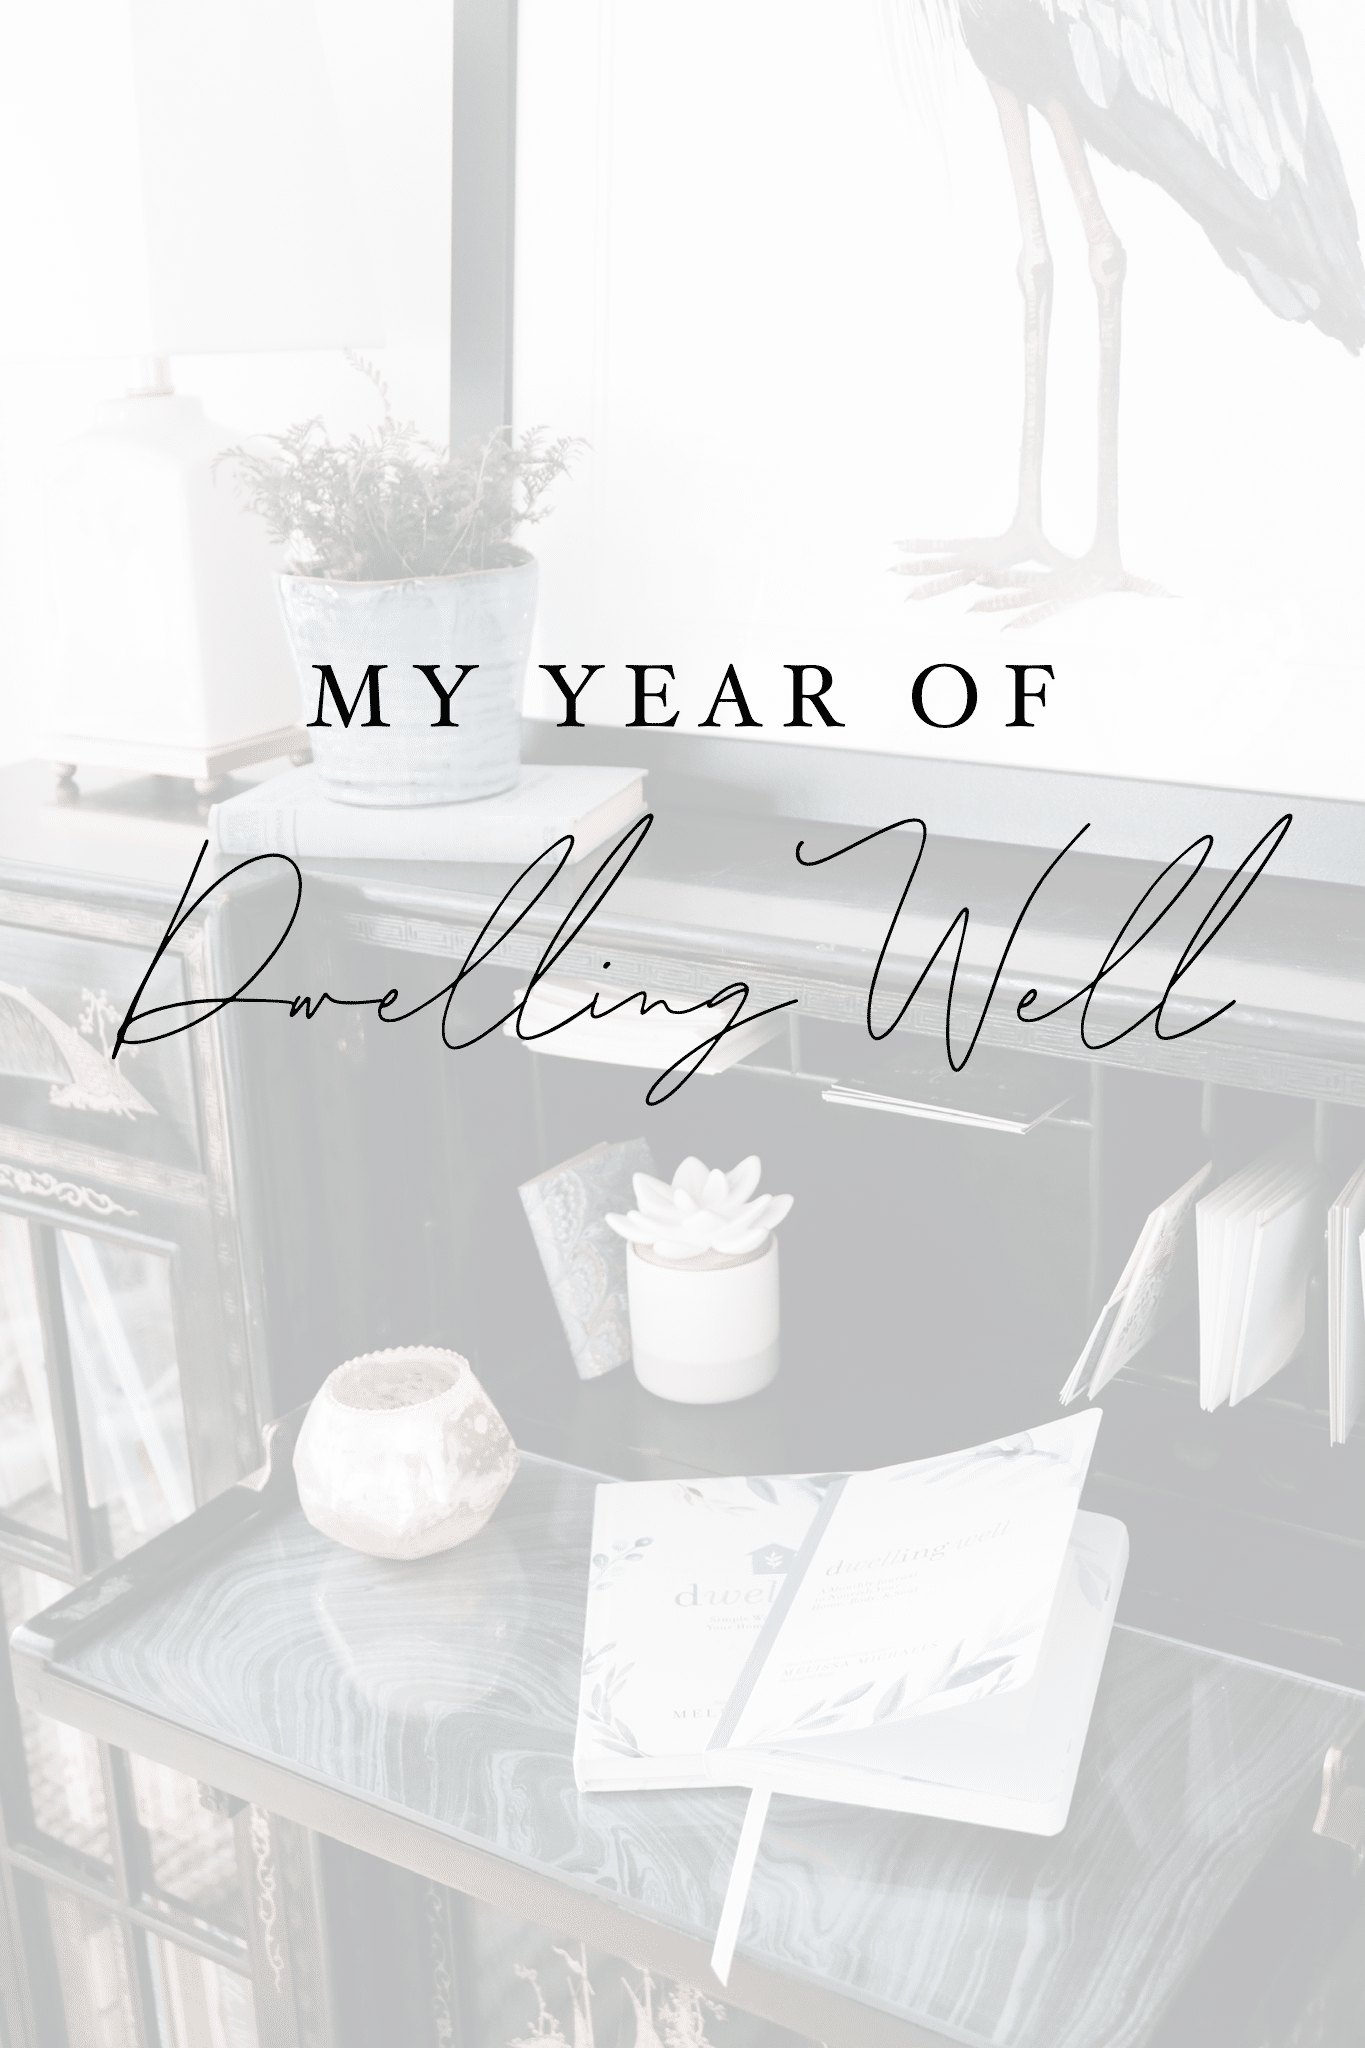 A Year of Dwelling Well (an invitation for 2020!)